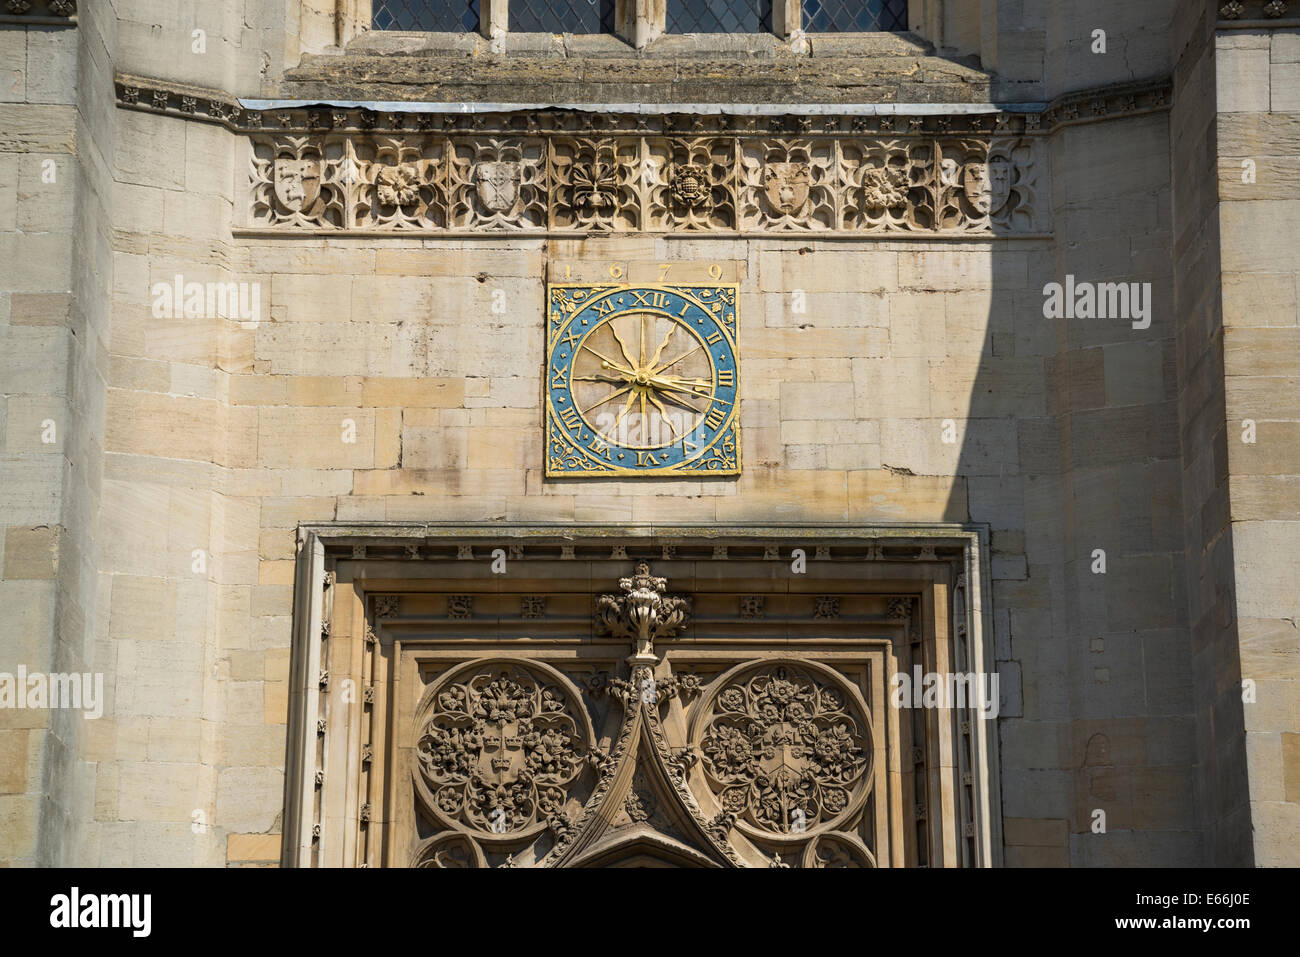 Great St Mary's Church, Clock above the entrance, Cambridge, England, UK - Stock Image